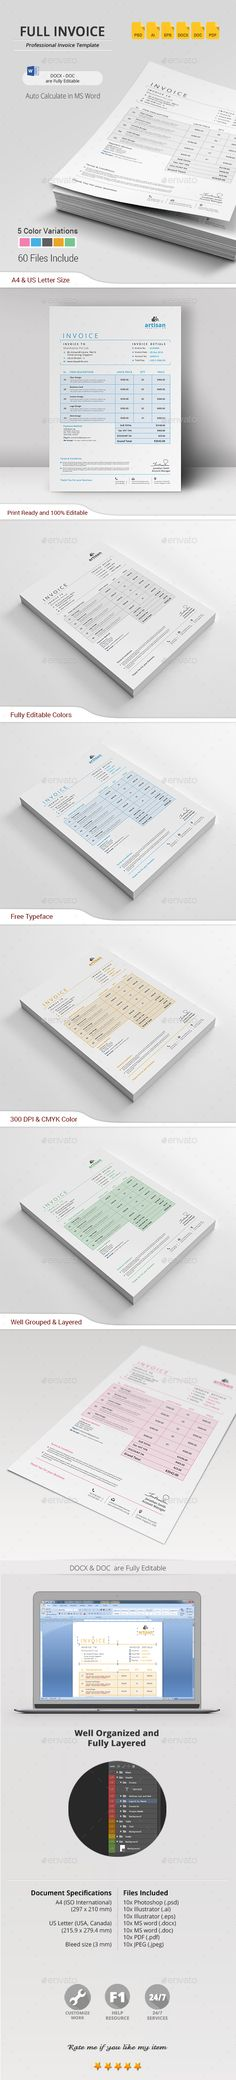 Invoice Bundle Print, Stationery and Template - invoice print